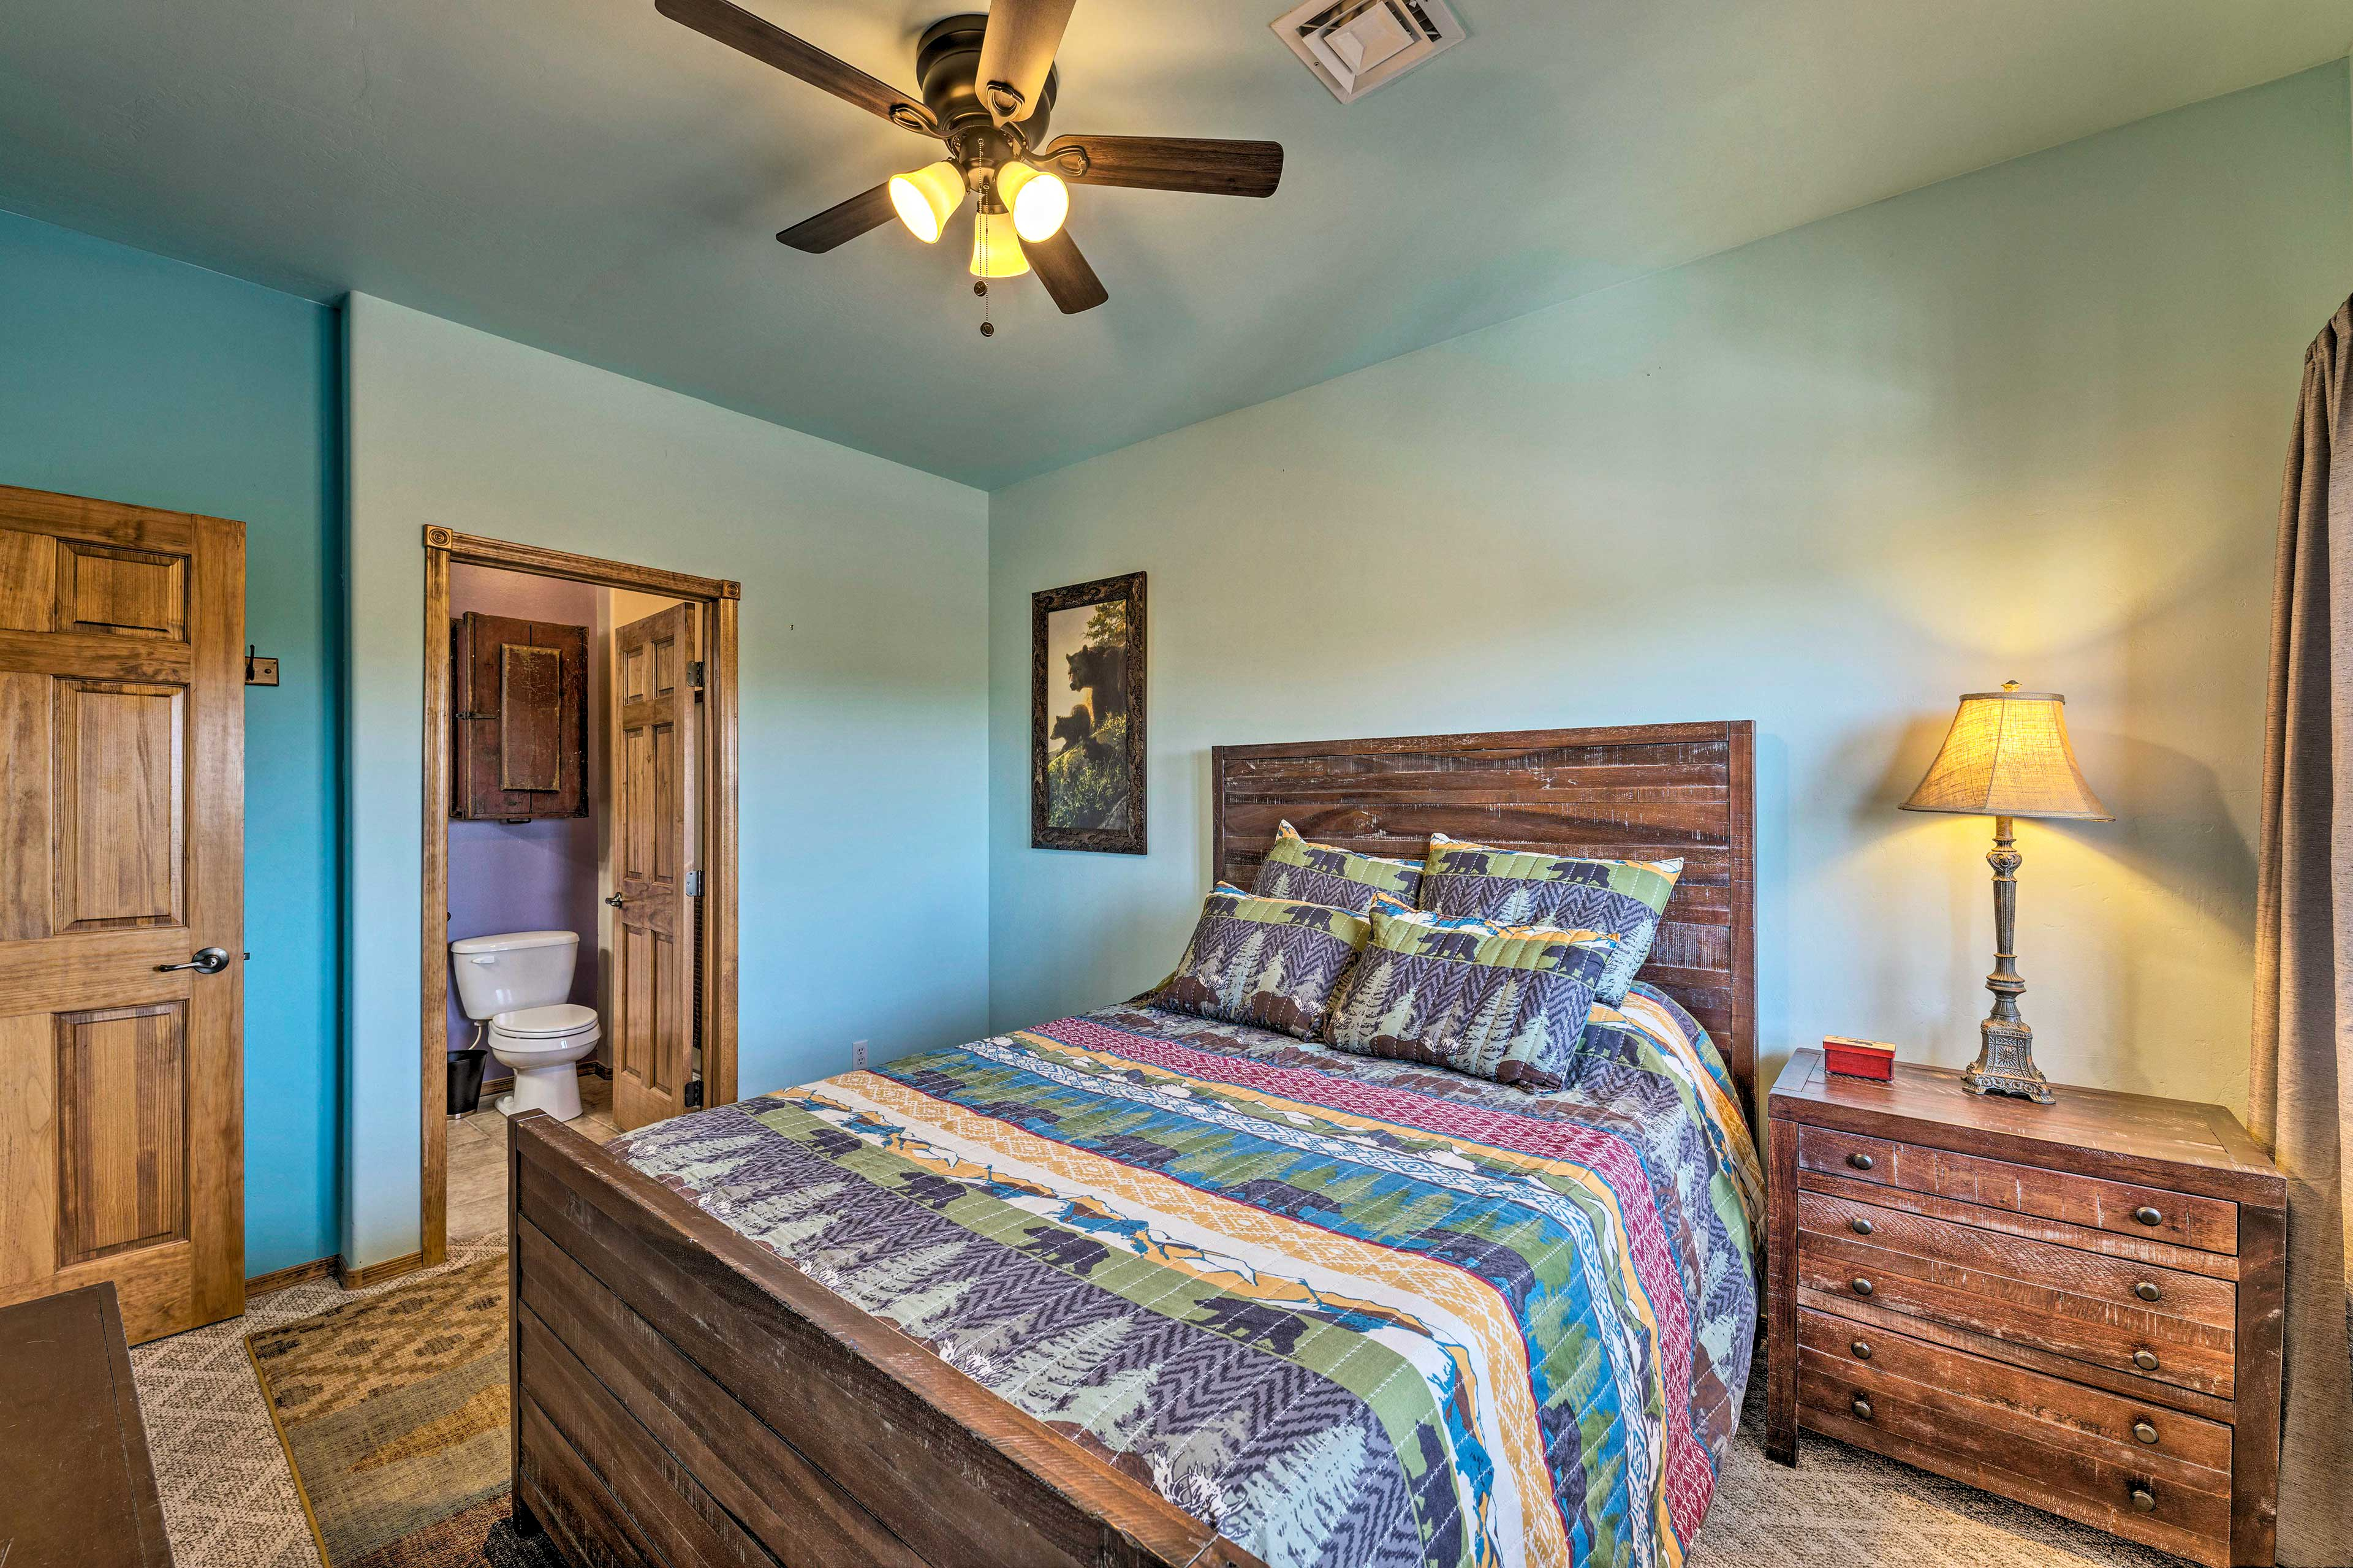 You'll feel revitalized after a refreshing rest on one of 3 queen beds.